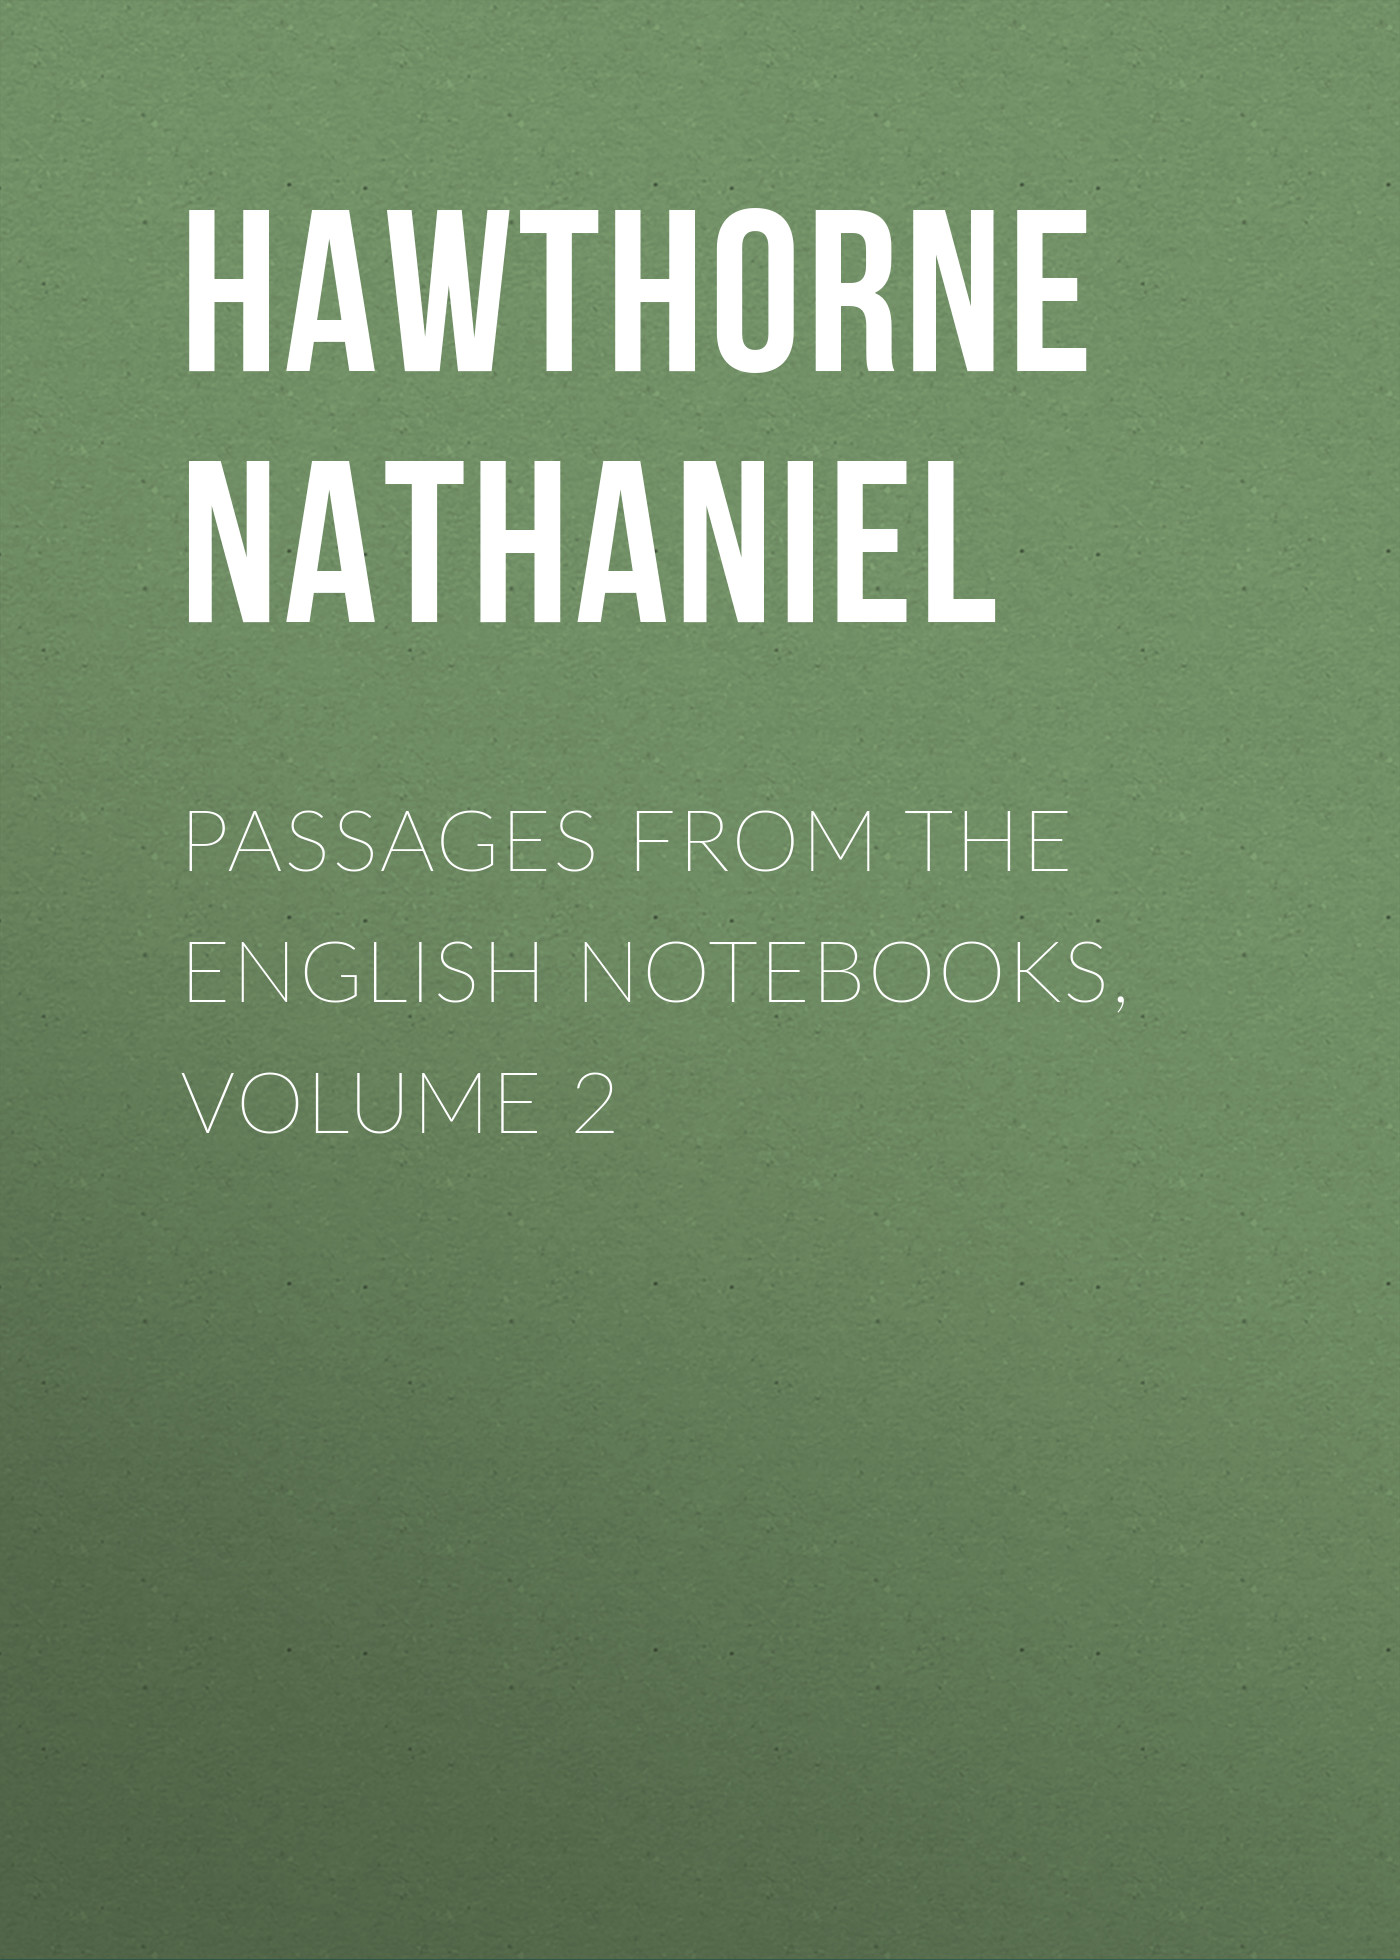 Hawthorne Nathaniel Passages from the English Notebooks, Volume 2 hawthorne nathaniel passages from the english notebooks complete